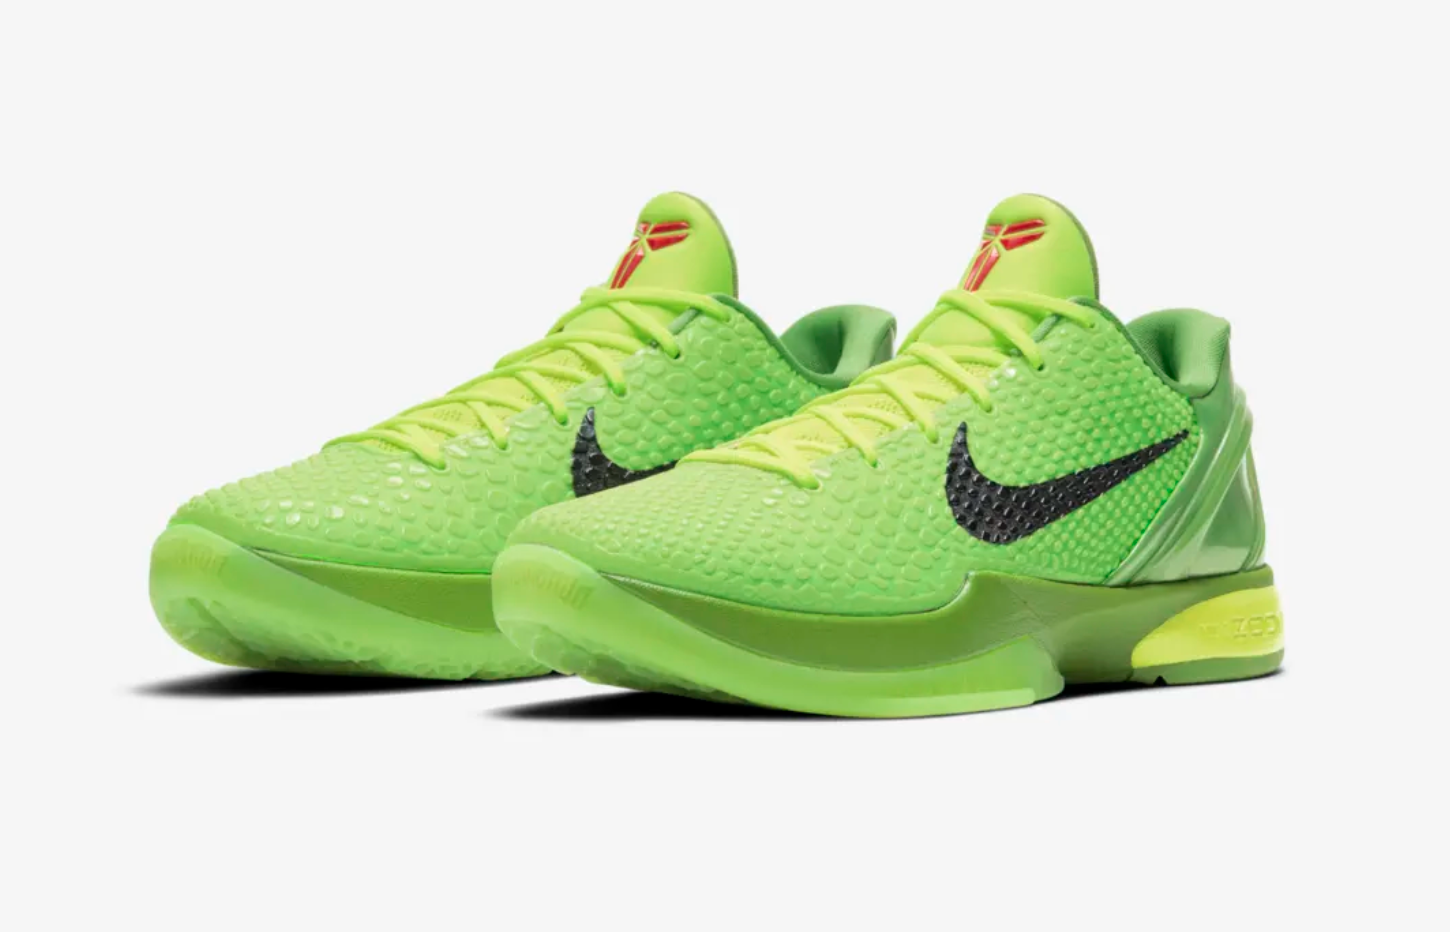 """SNKRS Played The Grinch Role Handing Out L's During Kobe 6 """"Proto"""" Launch"""